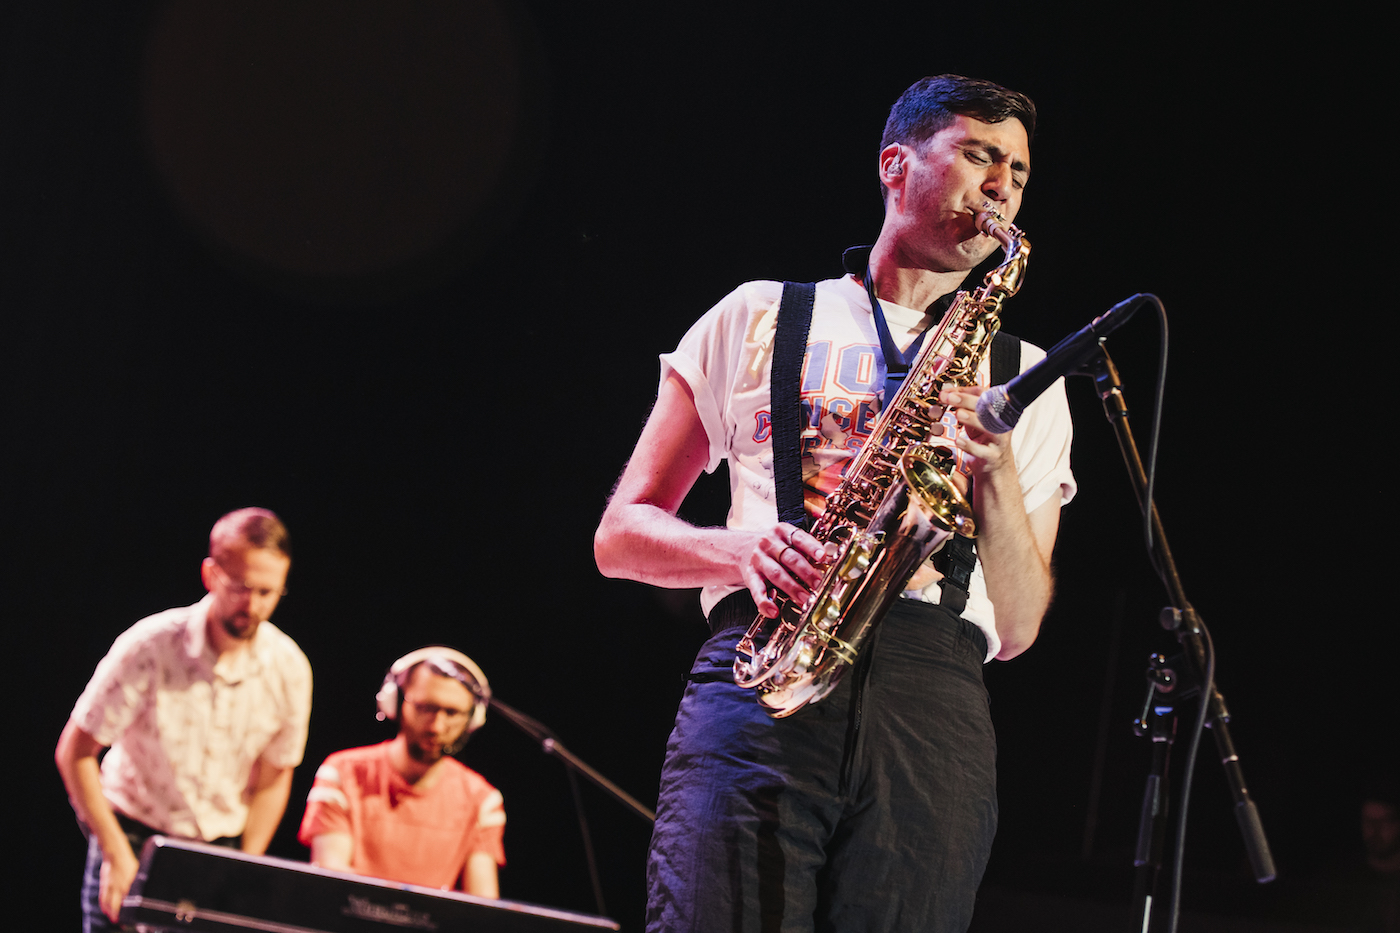 Joey Dosik and Vulfpeck at The Greek